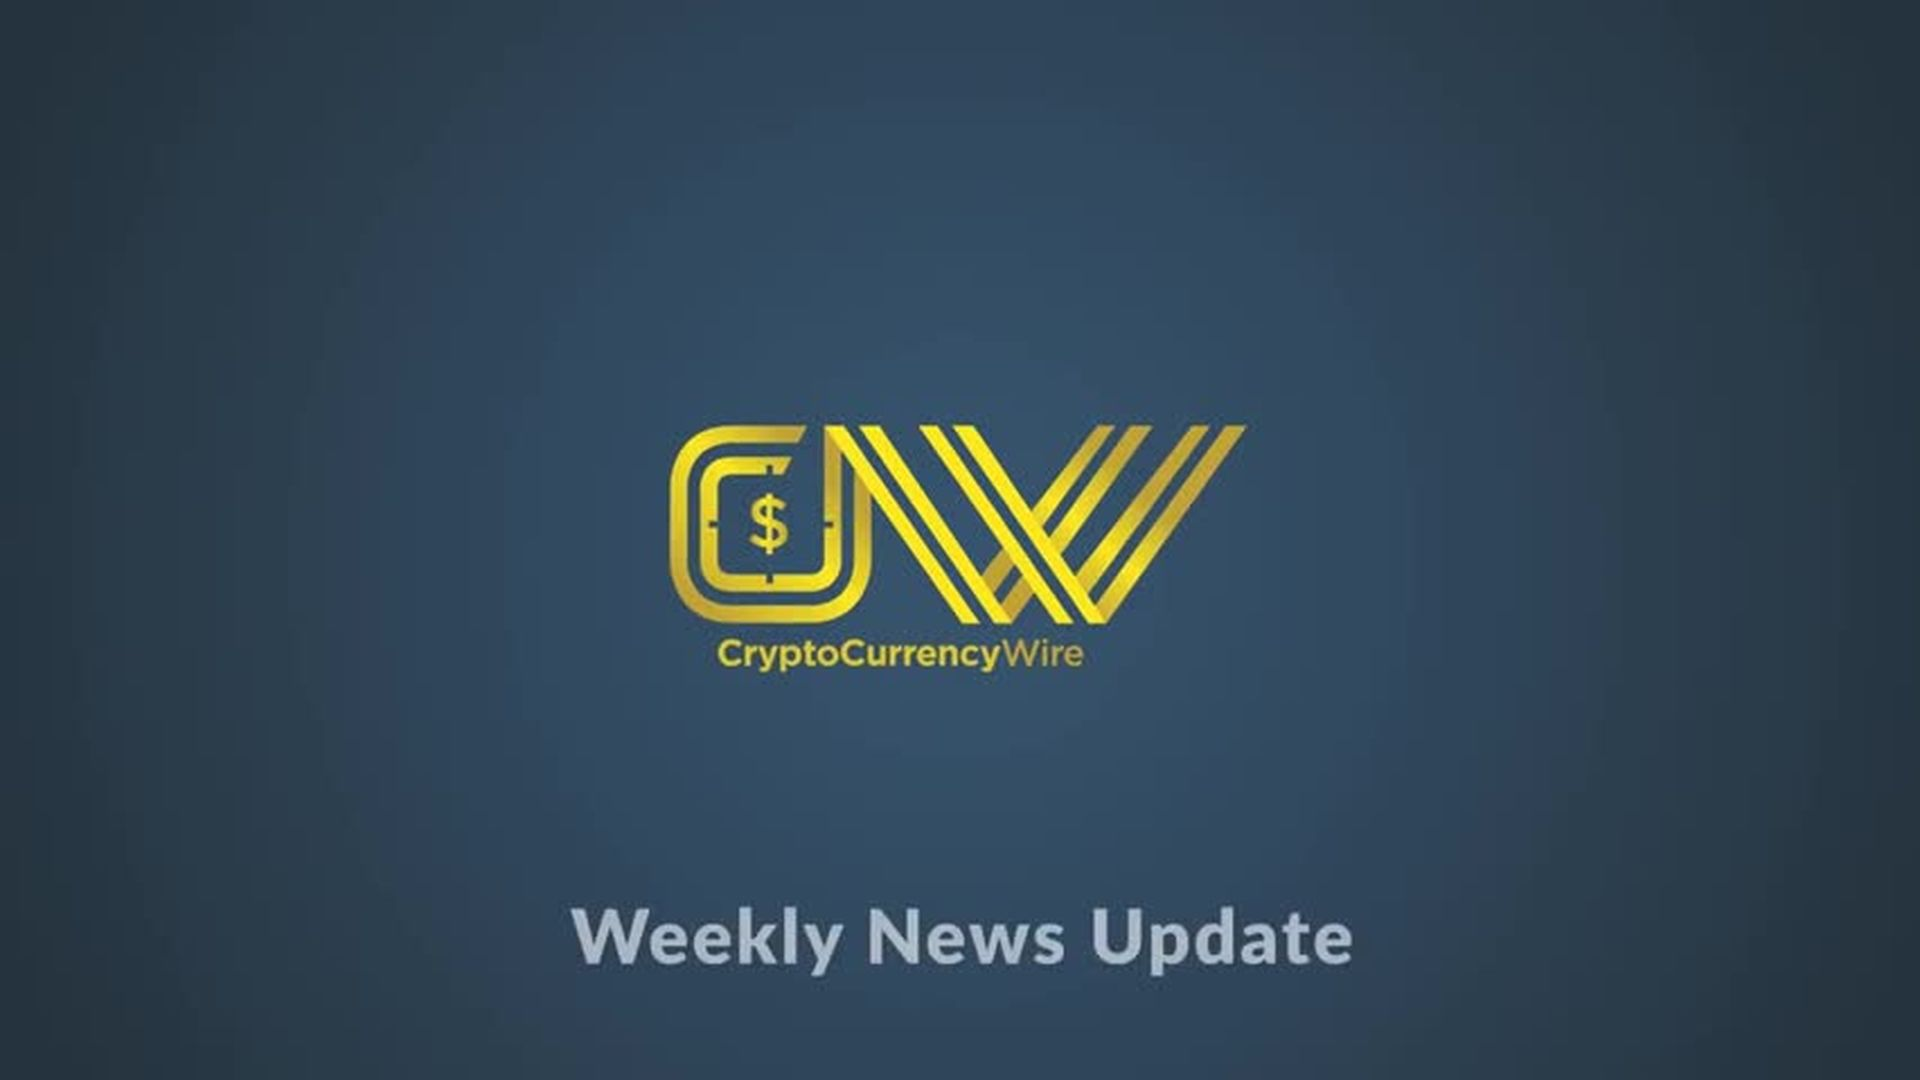 Cryptos Are Stabilizing: Fallout Will Bolster Cryptos | CryptoCurrencyWire on The Wild West Crypto Show | Episode 104